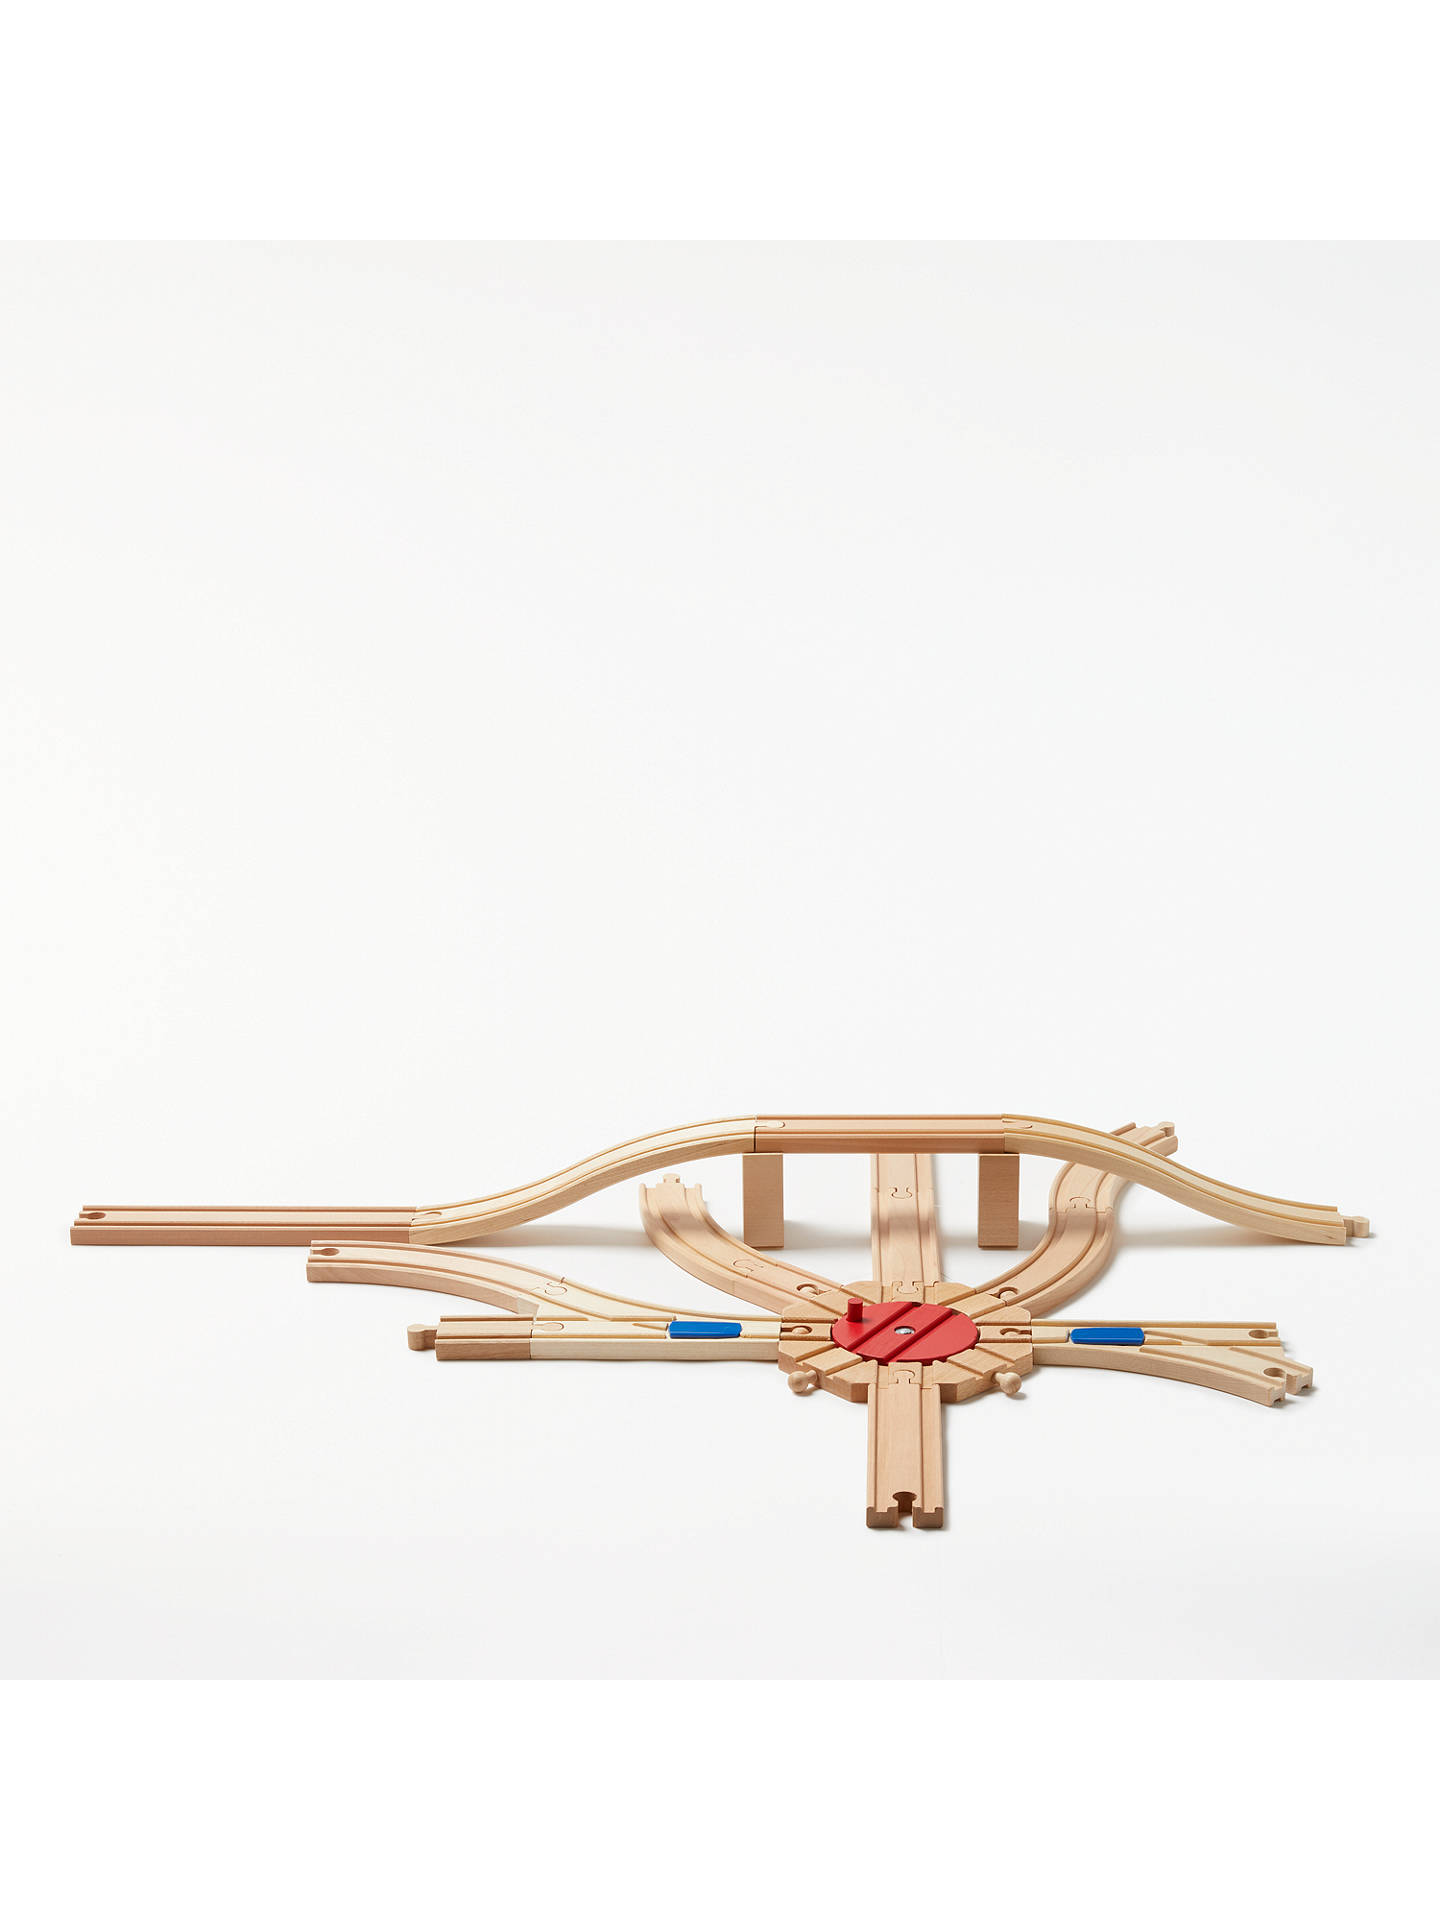 BuyJohn Lewis & Partners Wooden Railway Expansion Pack Online at johnlewis.com